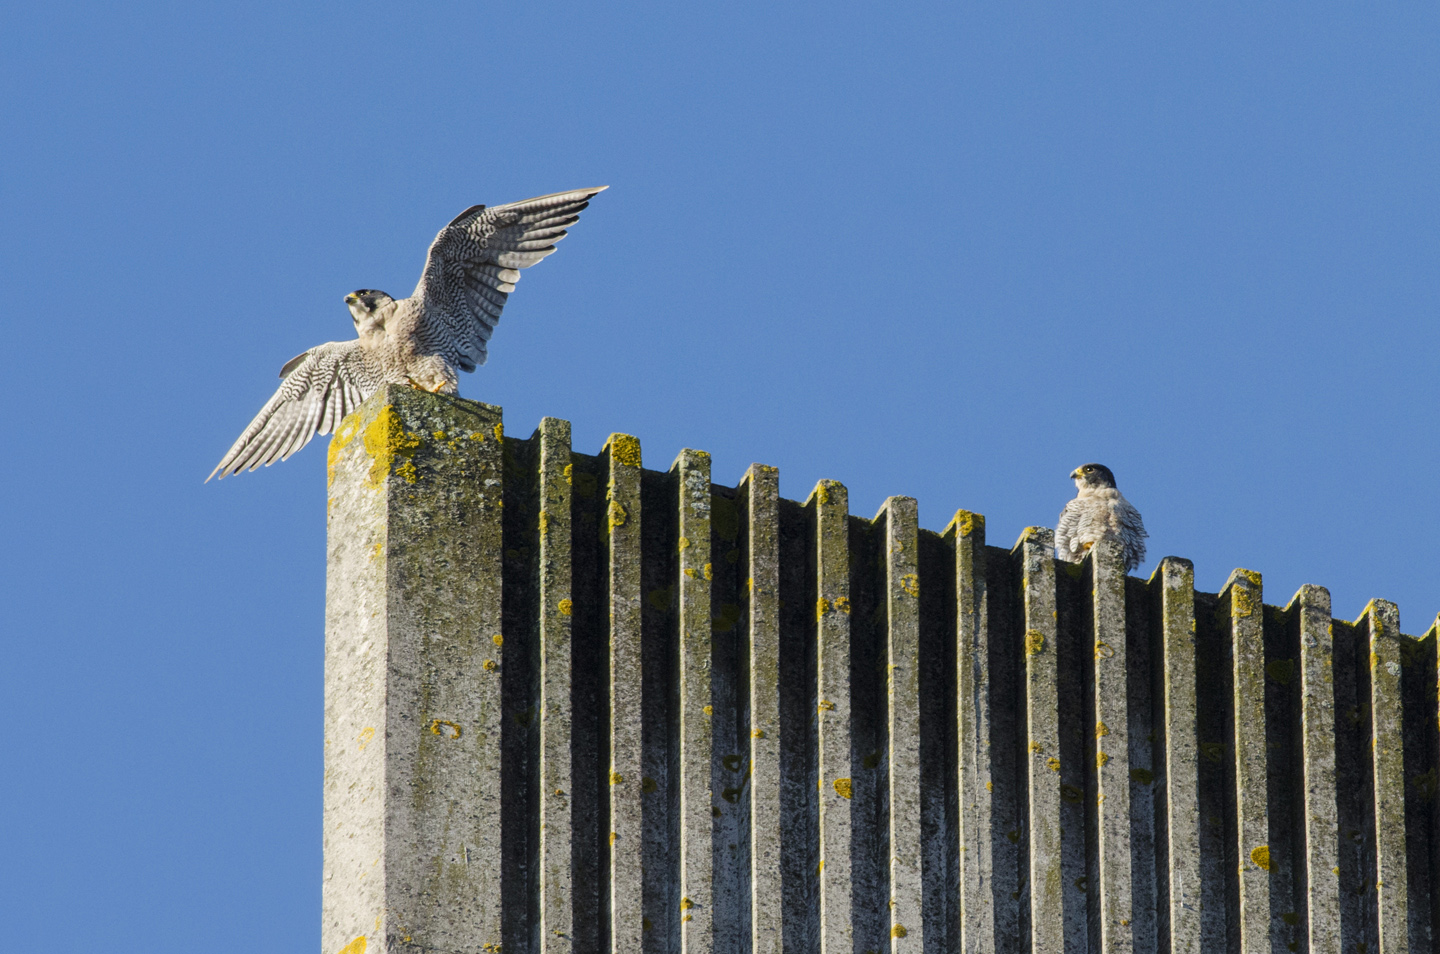 Once the tiercel has proved he is aproficient hunterand can provide for the family, the falcon accepts him and they may stay together for many years